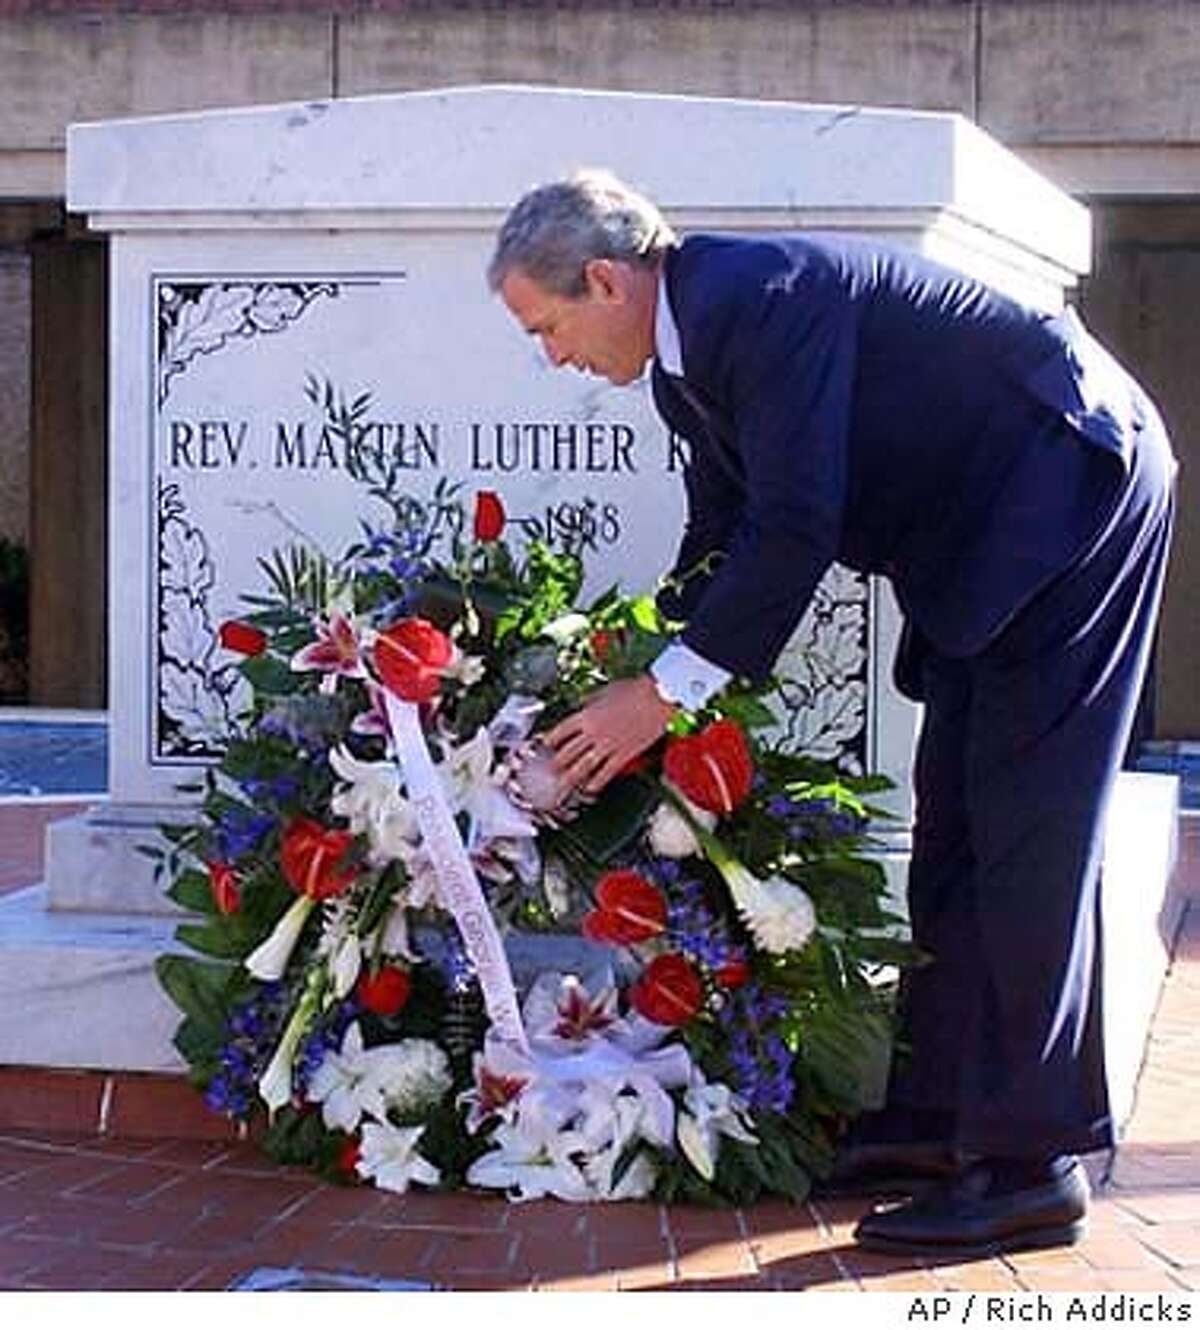 President Bush lays a wreath at the tomb of Martin Luther King Jr., Thursday, Jan. 15, 2004, at the King Center in Atlanta. Bush was in Atlanta to honor King as well as attend a fund-raiser at the Georgia World Congress Center. (AP Photo/The Atlanta Journal-Constitution, Rich Addicks) President Bush lays a wreath at Martin Luther King Jr.'s grave. President Bush lays a wreath at Martin Luther King Jr.'s grave.